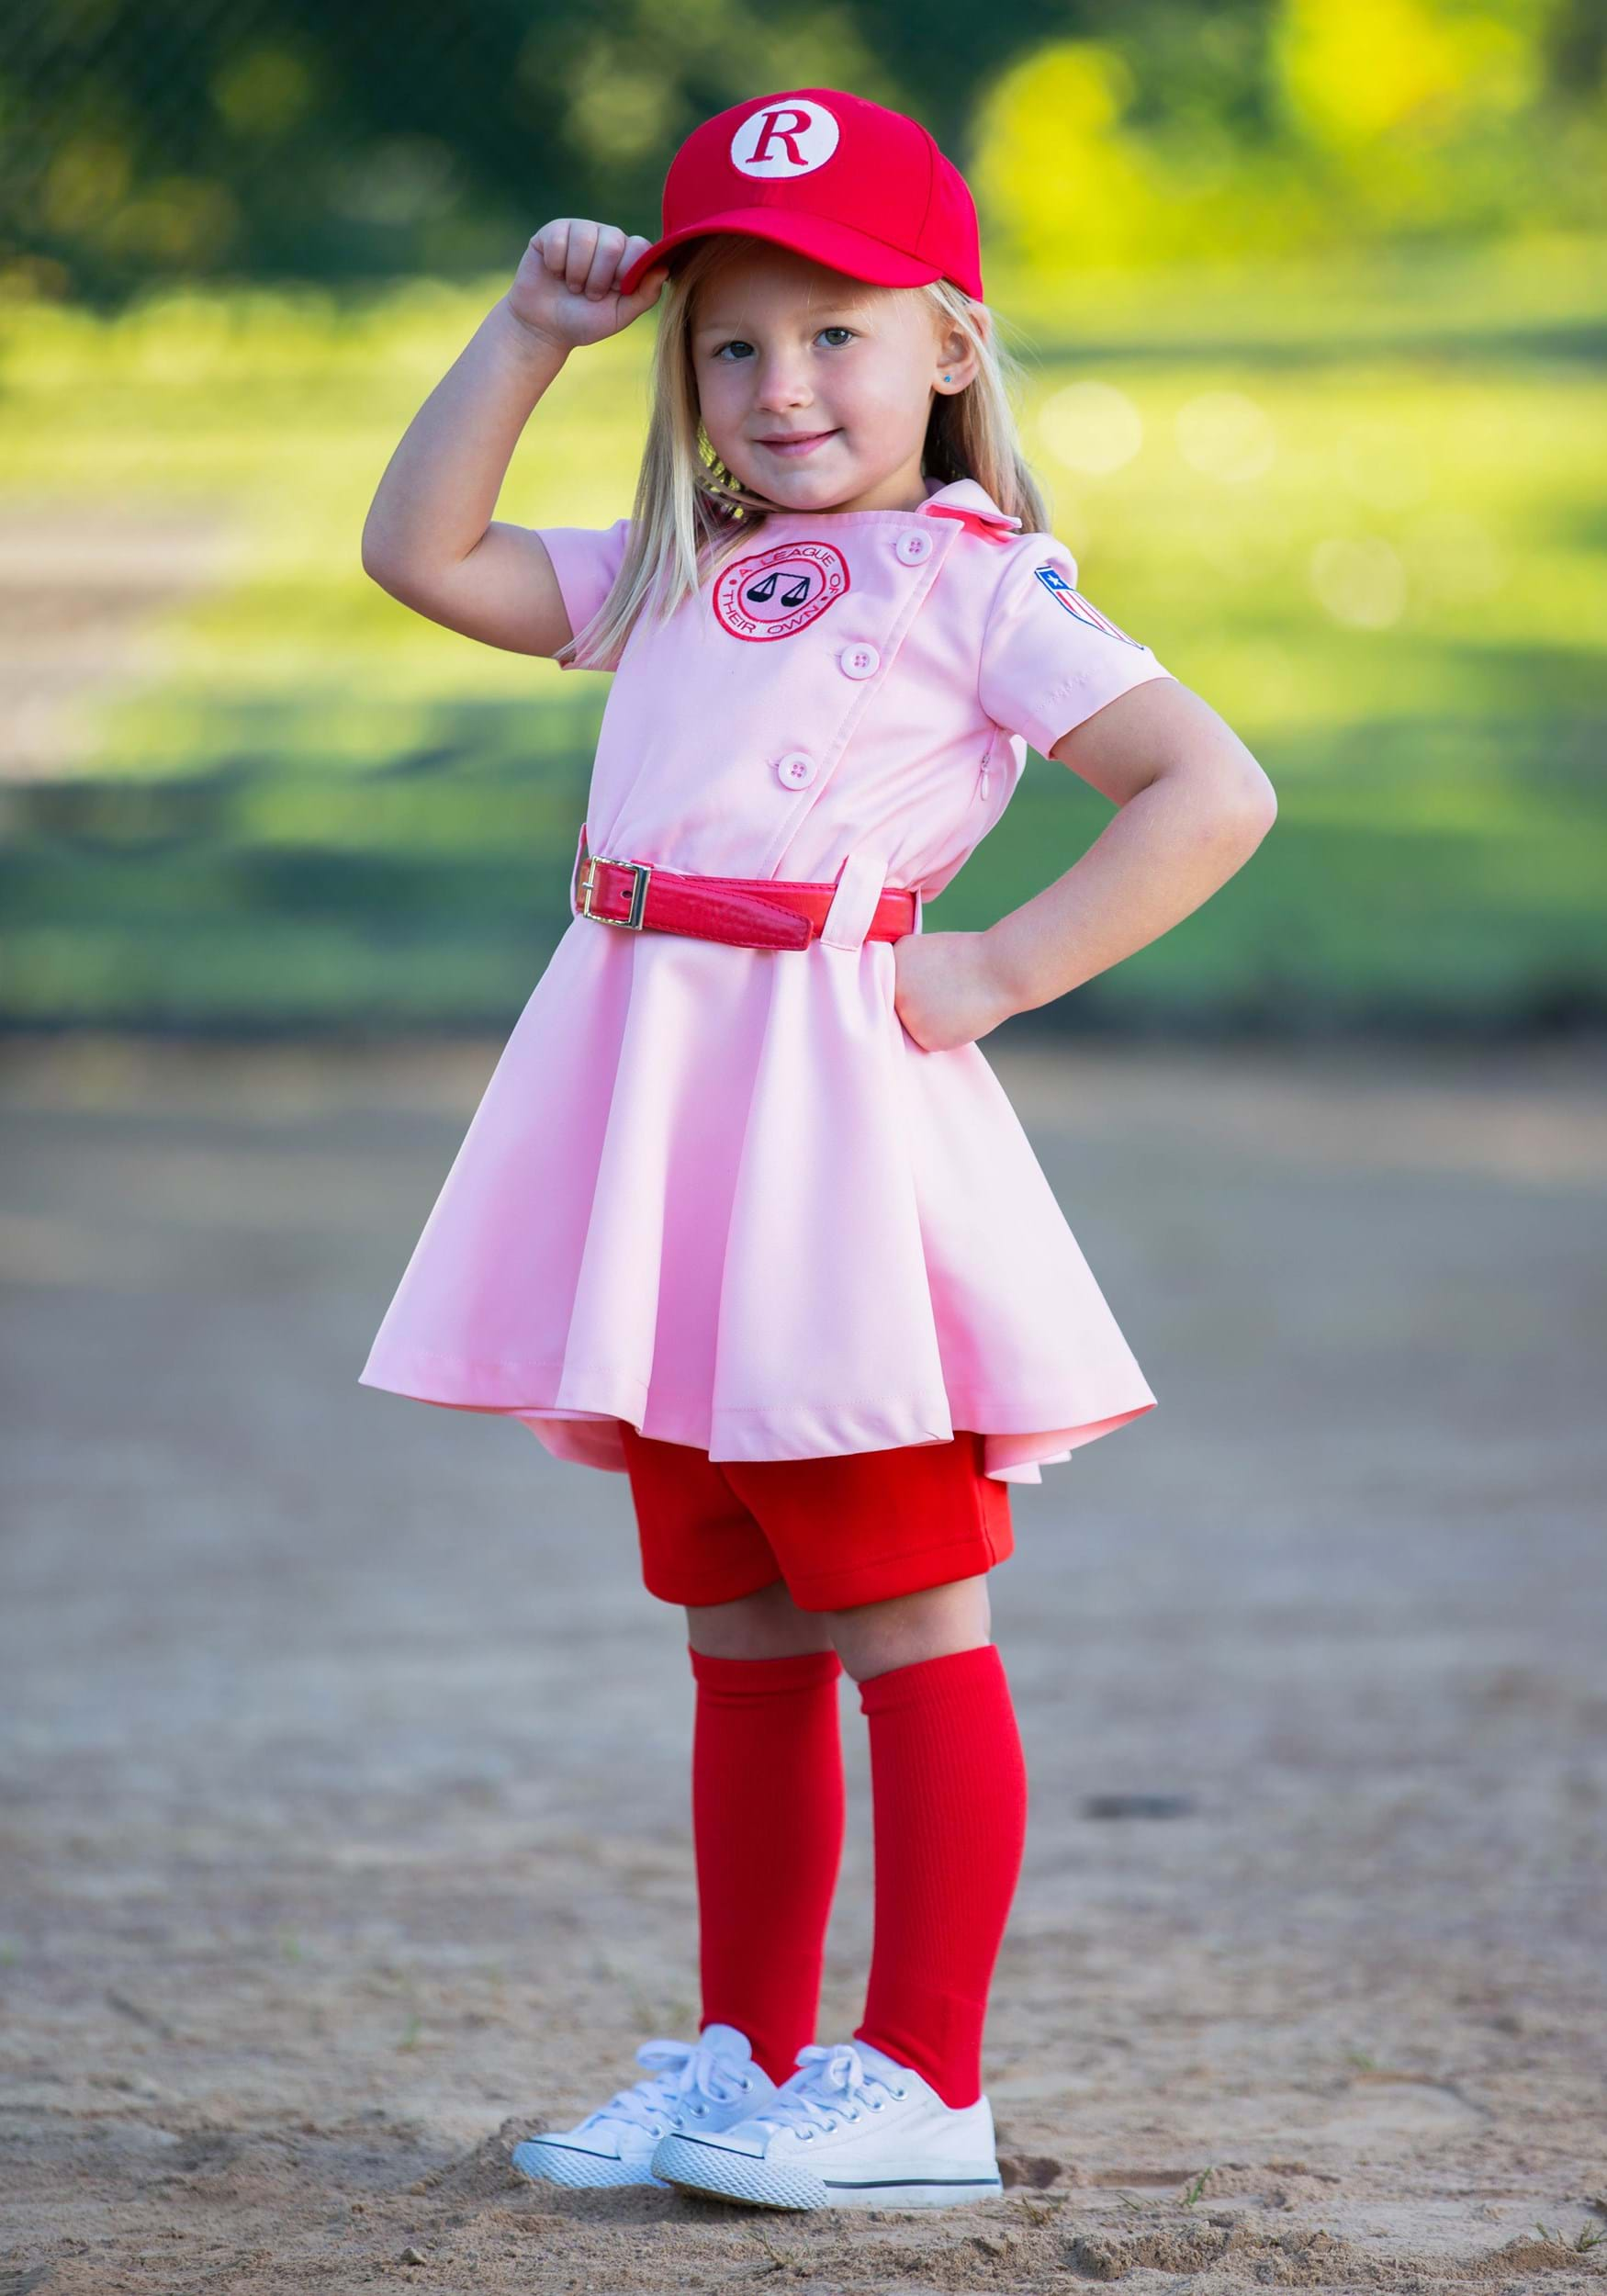 League of Their Own Toddler Dottie Luxury Costume For Girls